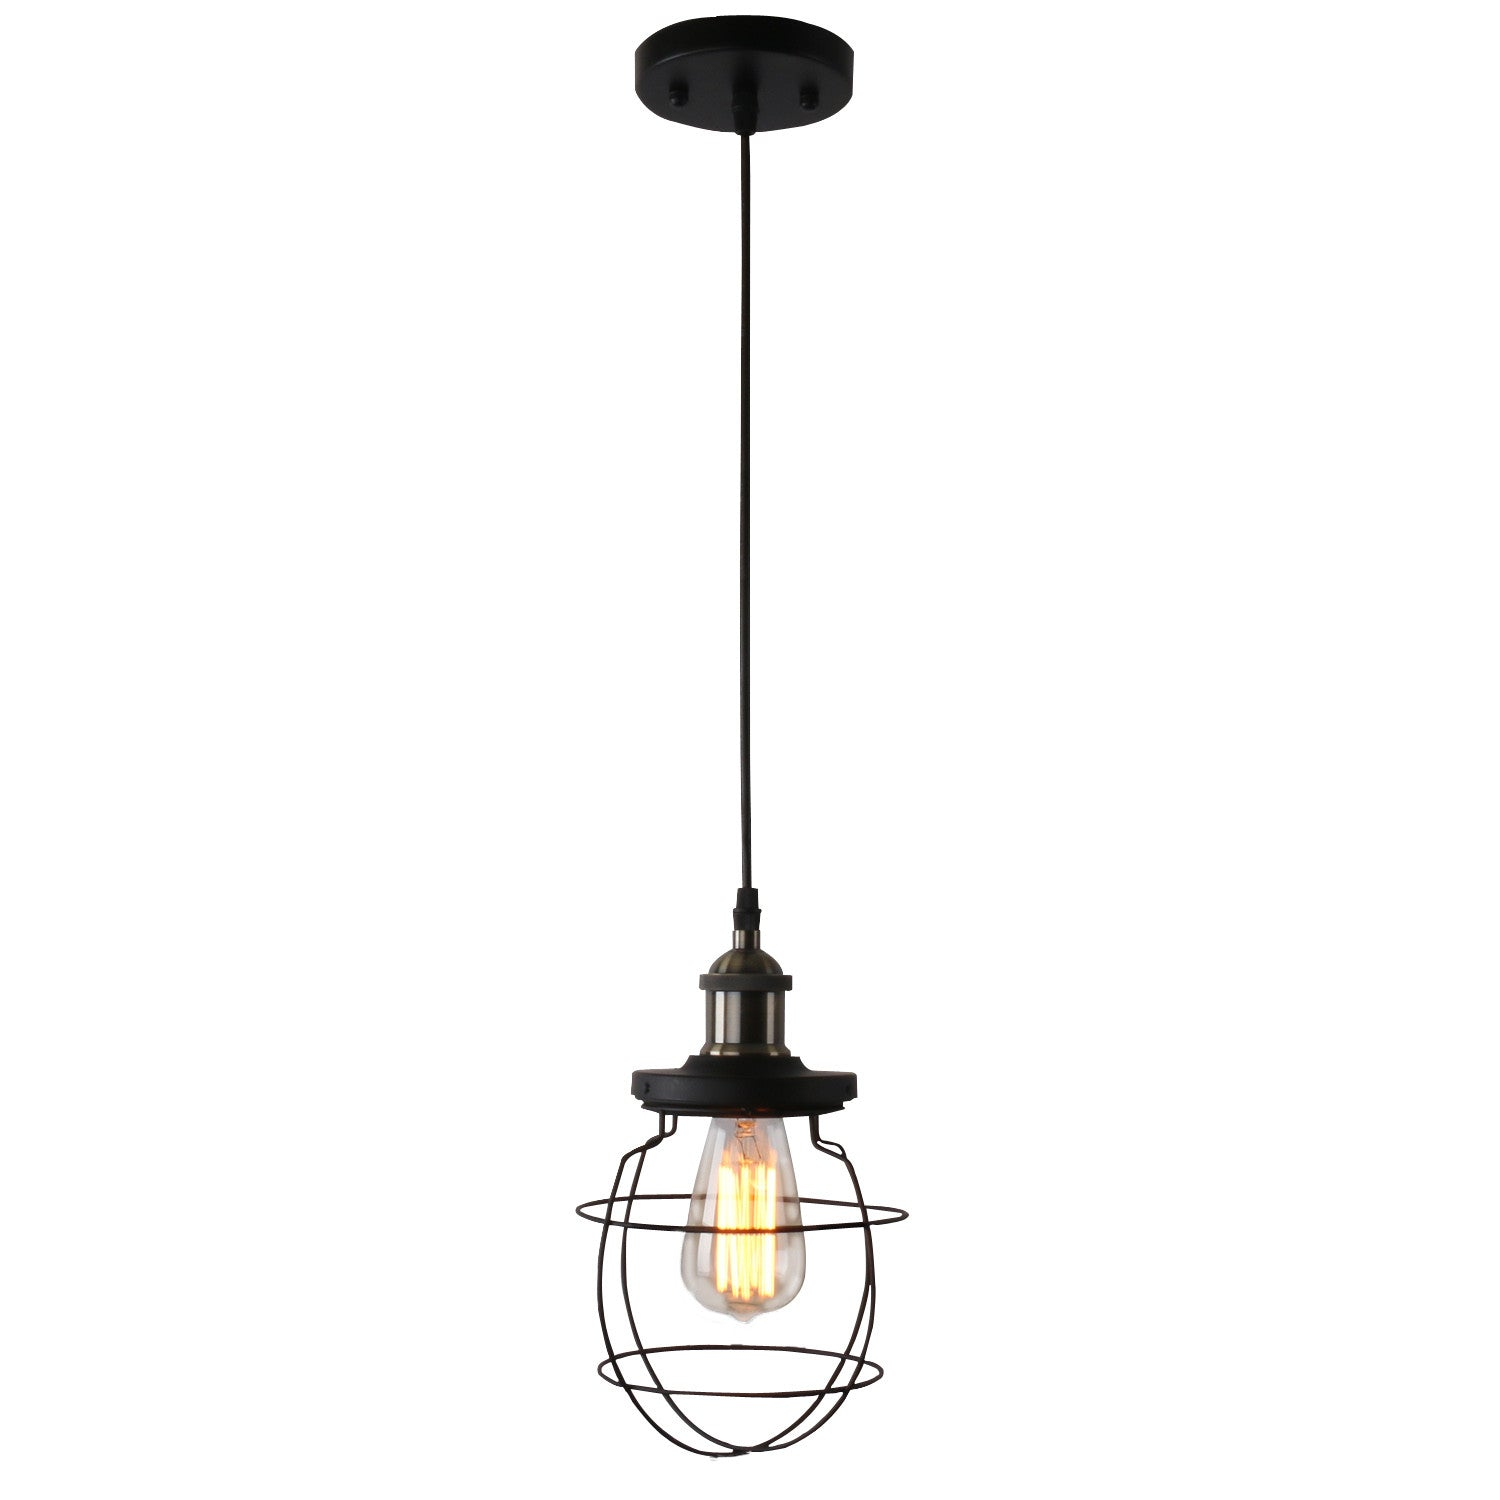 lighting lane pdp winslow mini birch reviews black pendant